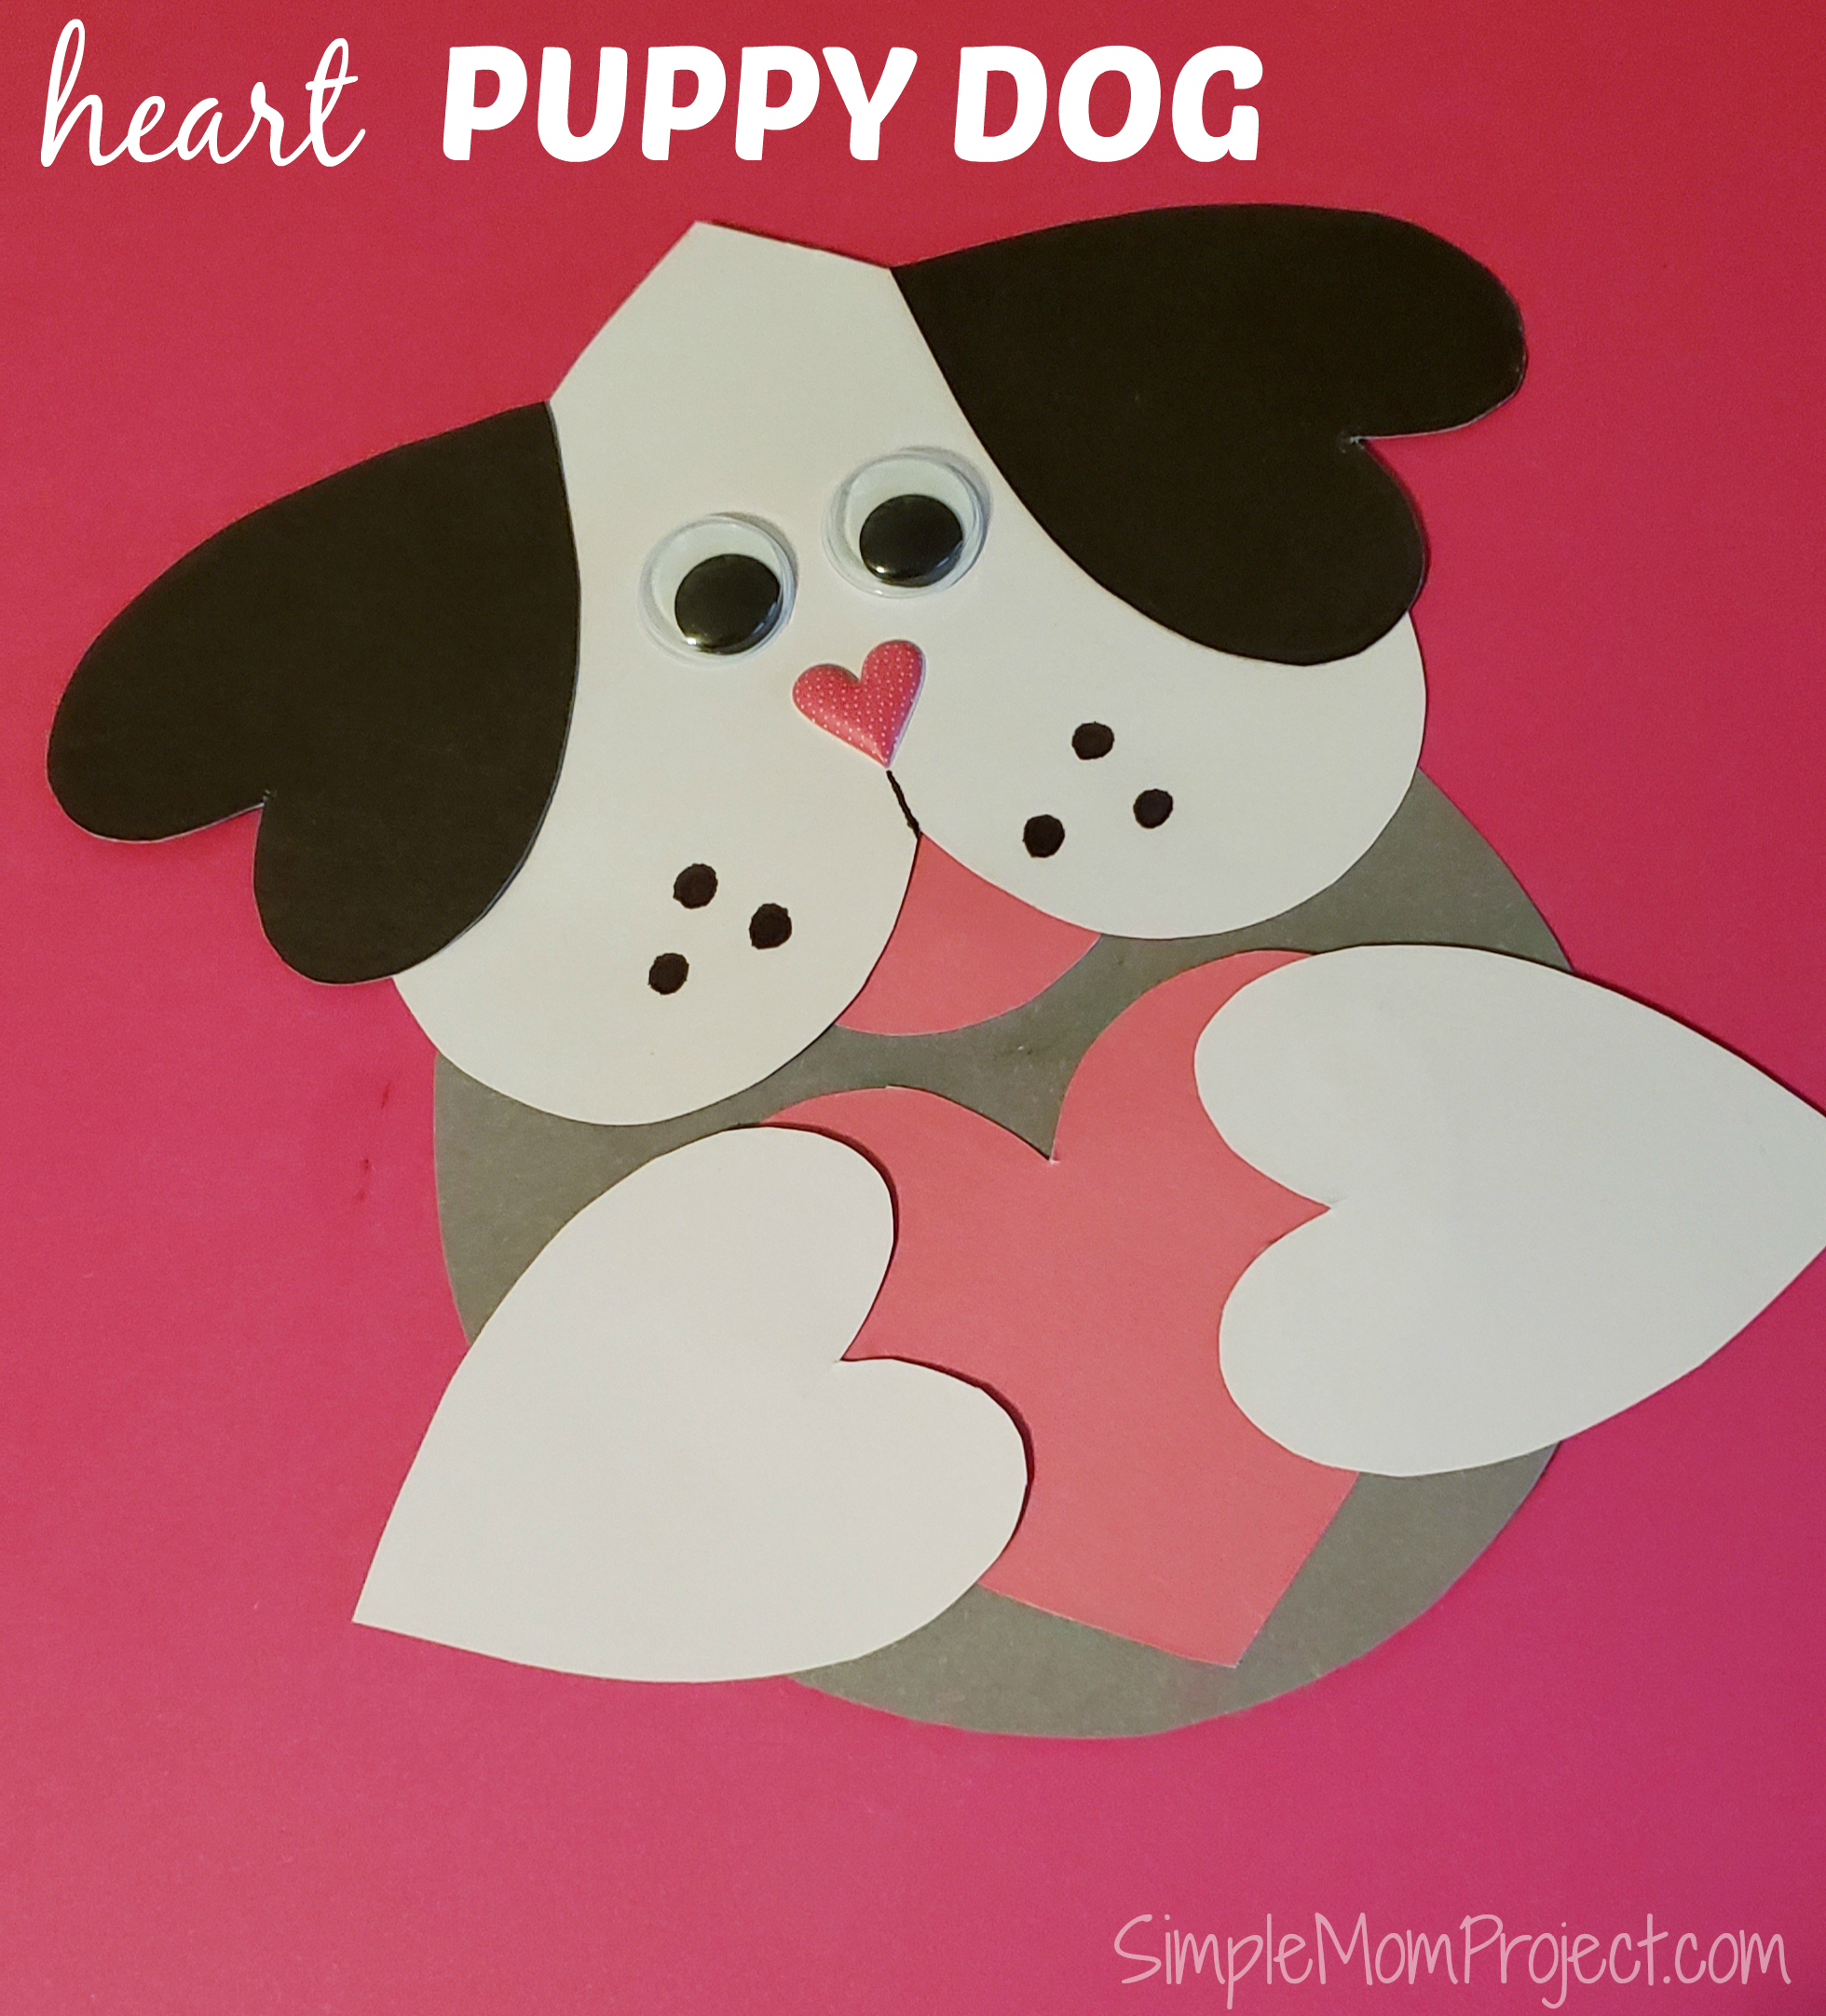 Valentine's Day Puppy Dog Card With Free Printable Template - Simple - Free Printable Mothers Day Cards From The Dog